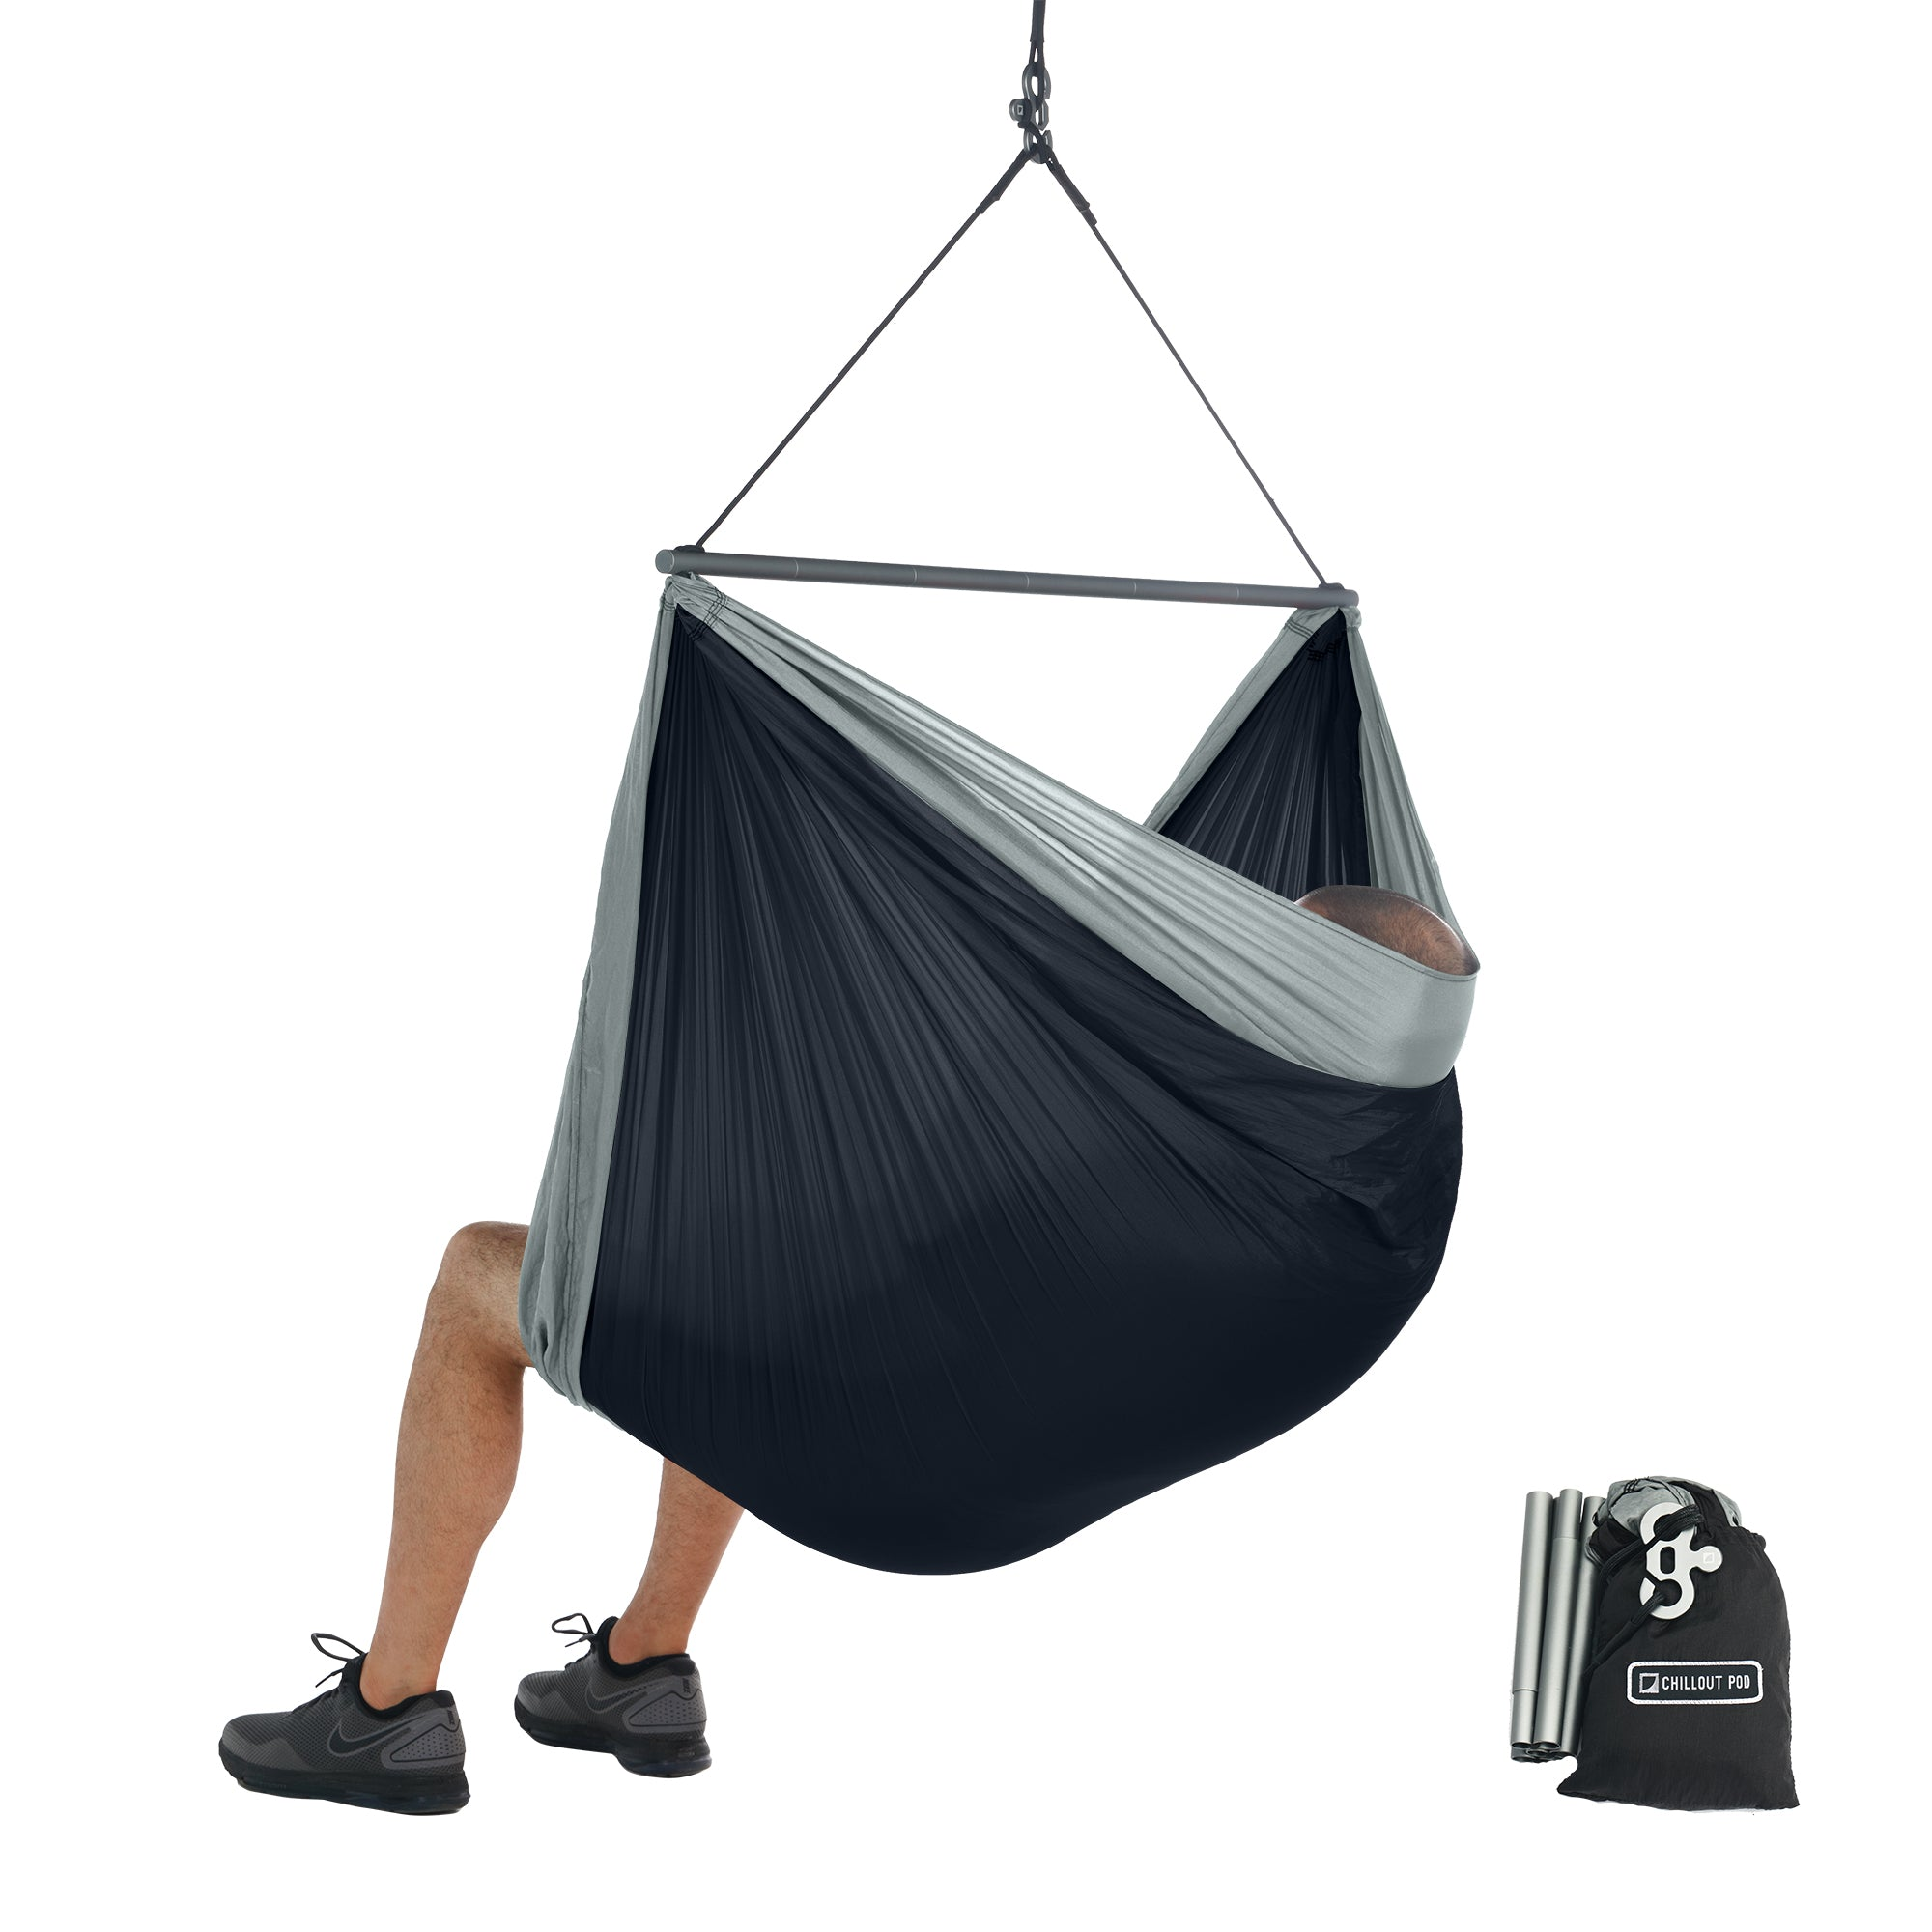 Foldable Hanging Chair Portable Hammock Chair Black Grey Chillout Pod